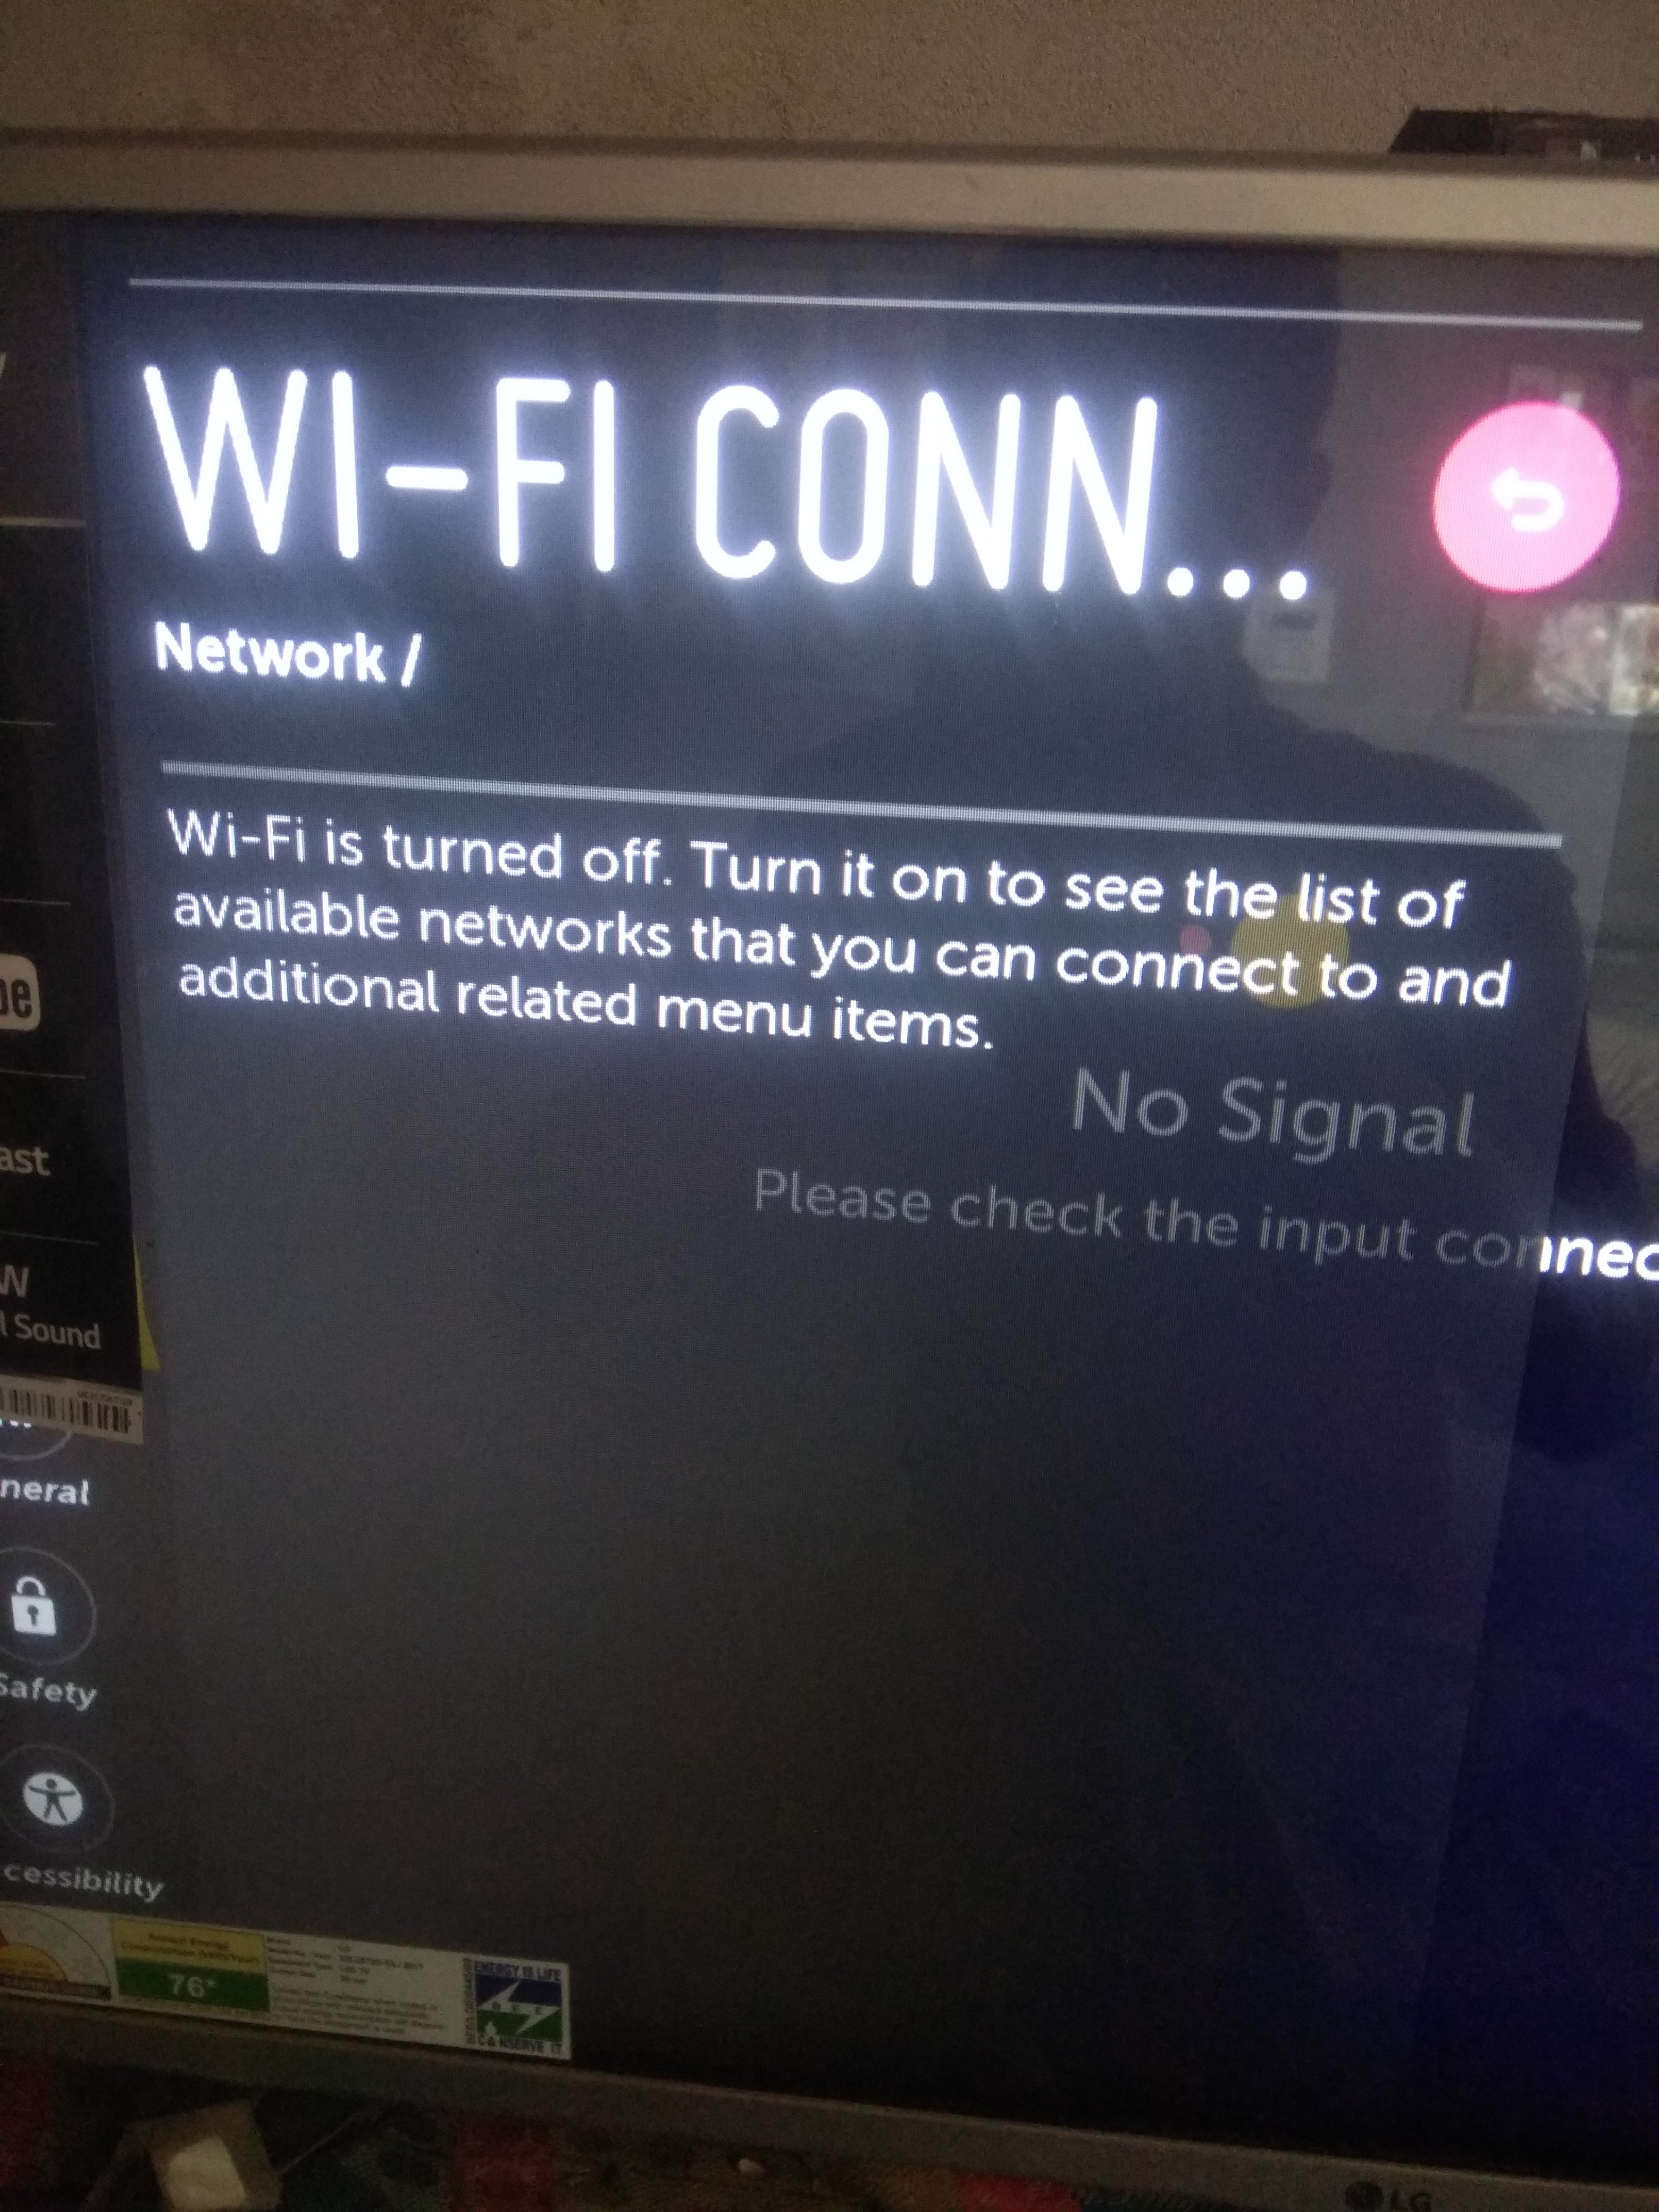 WiFi turned off issue - LG webOS Smart TV Questions - LG webOS